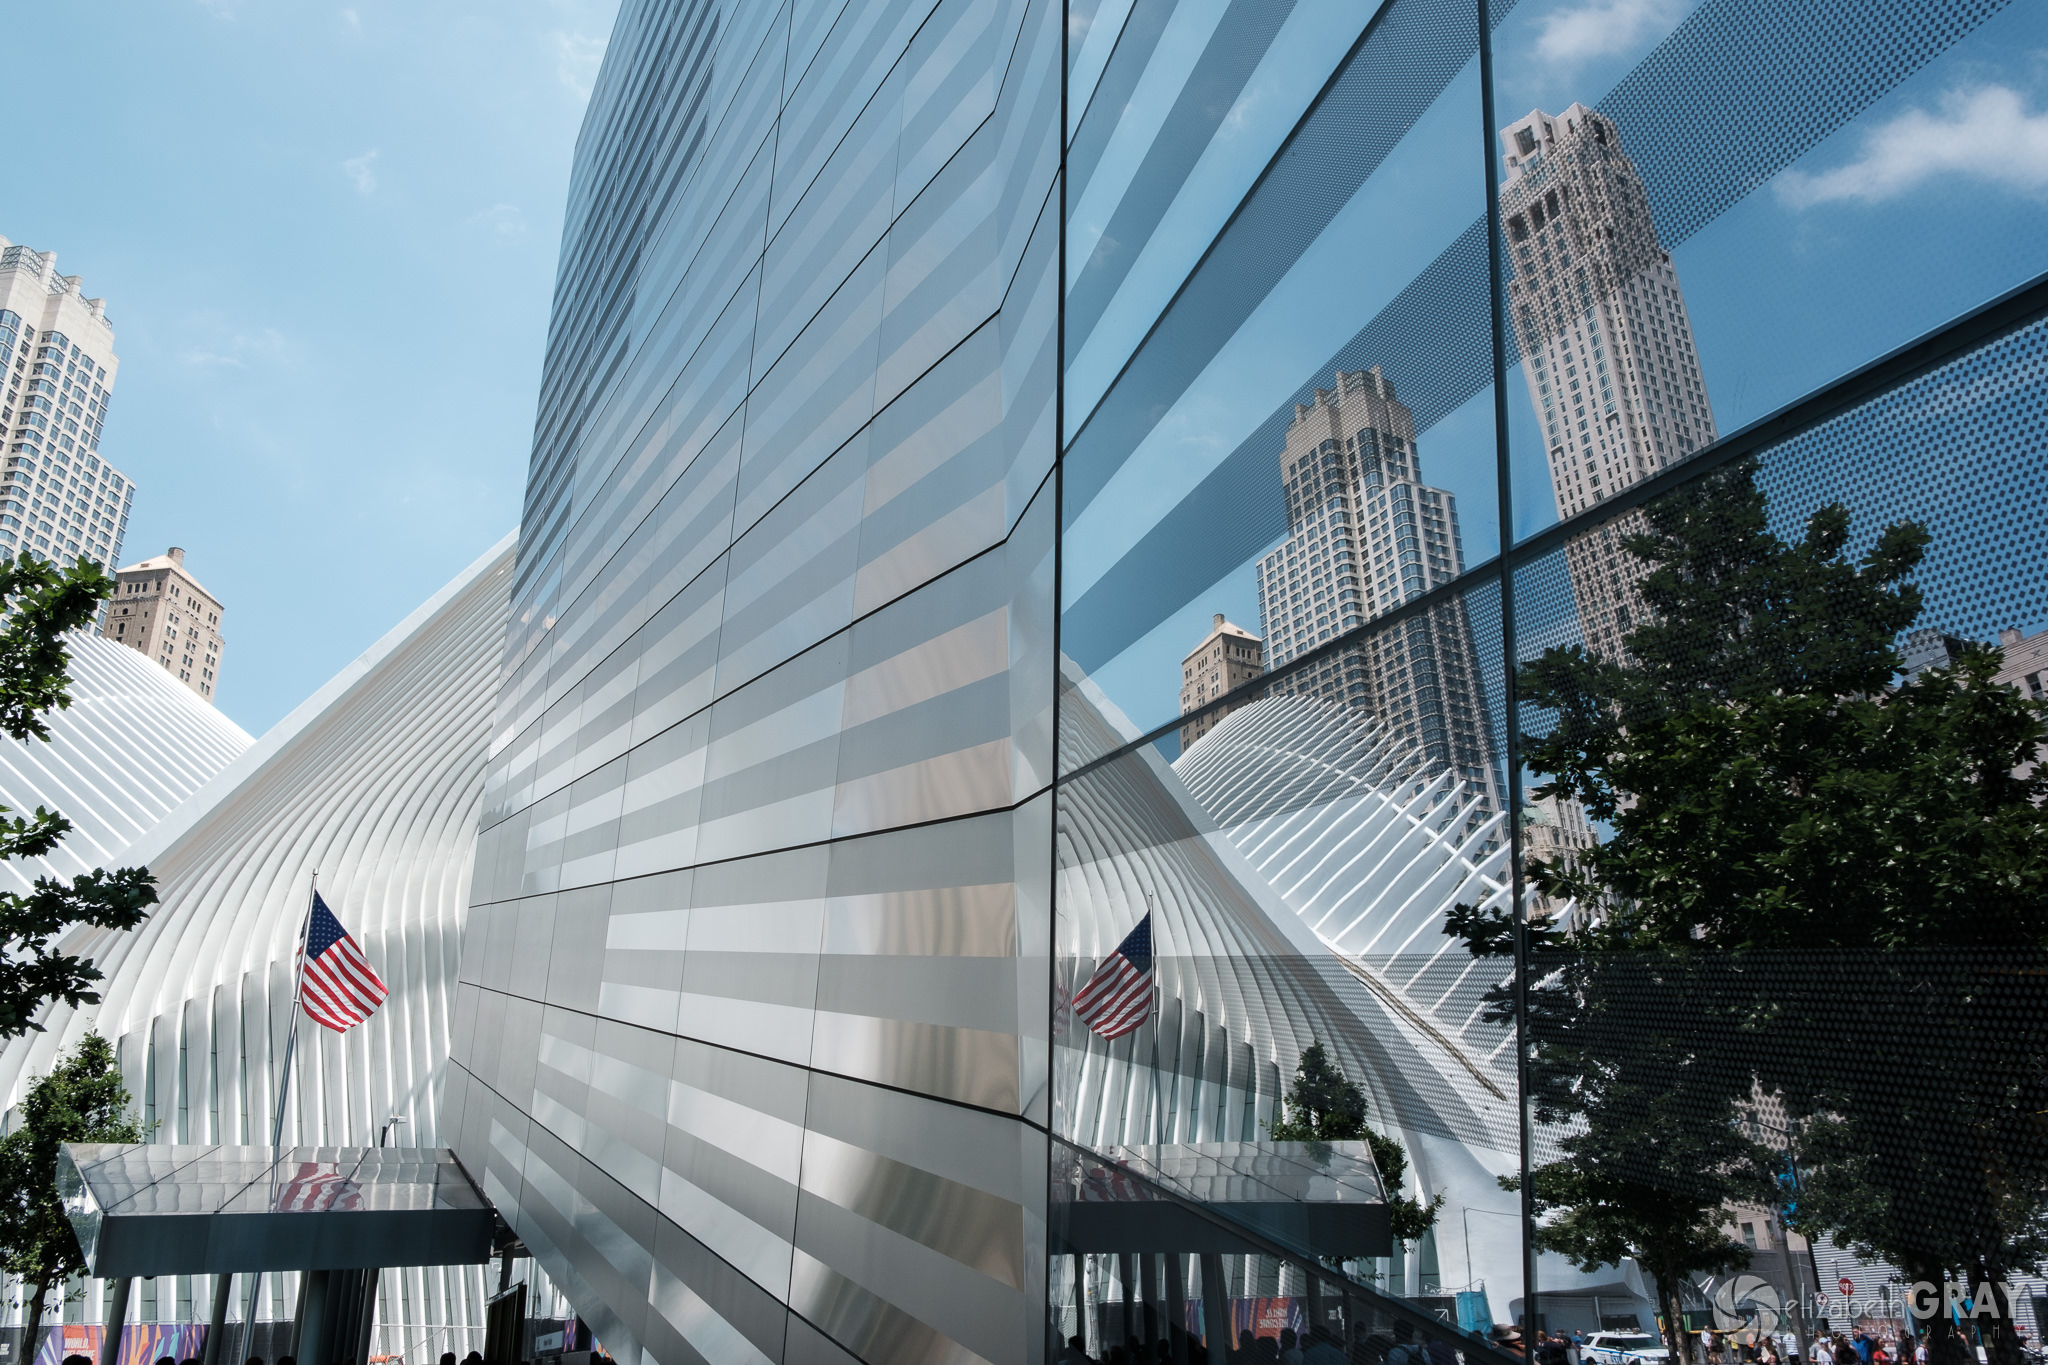 9/11 Museum Reflections